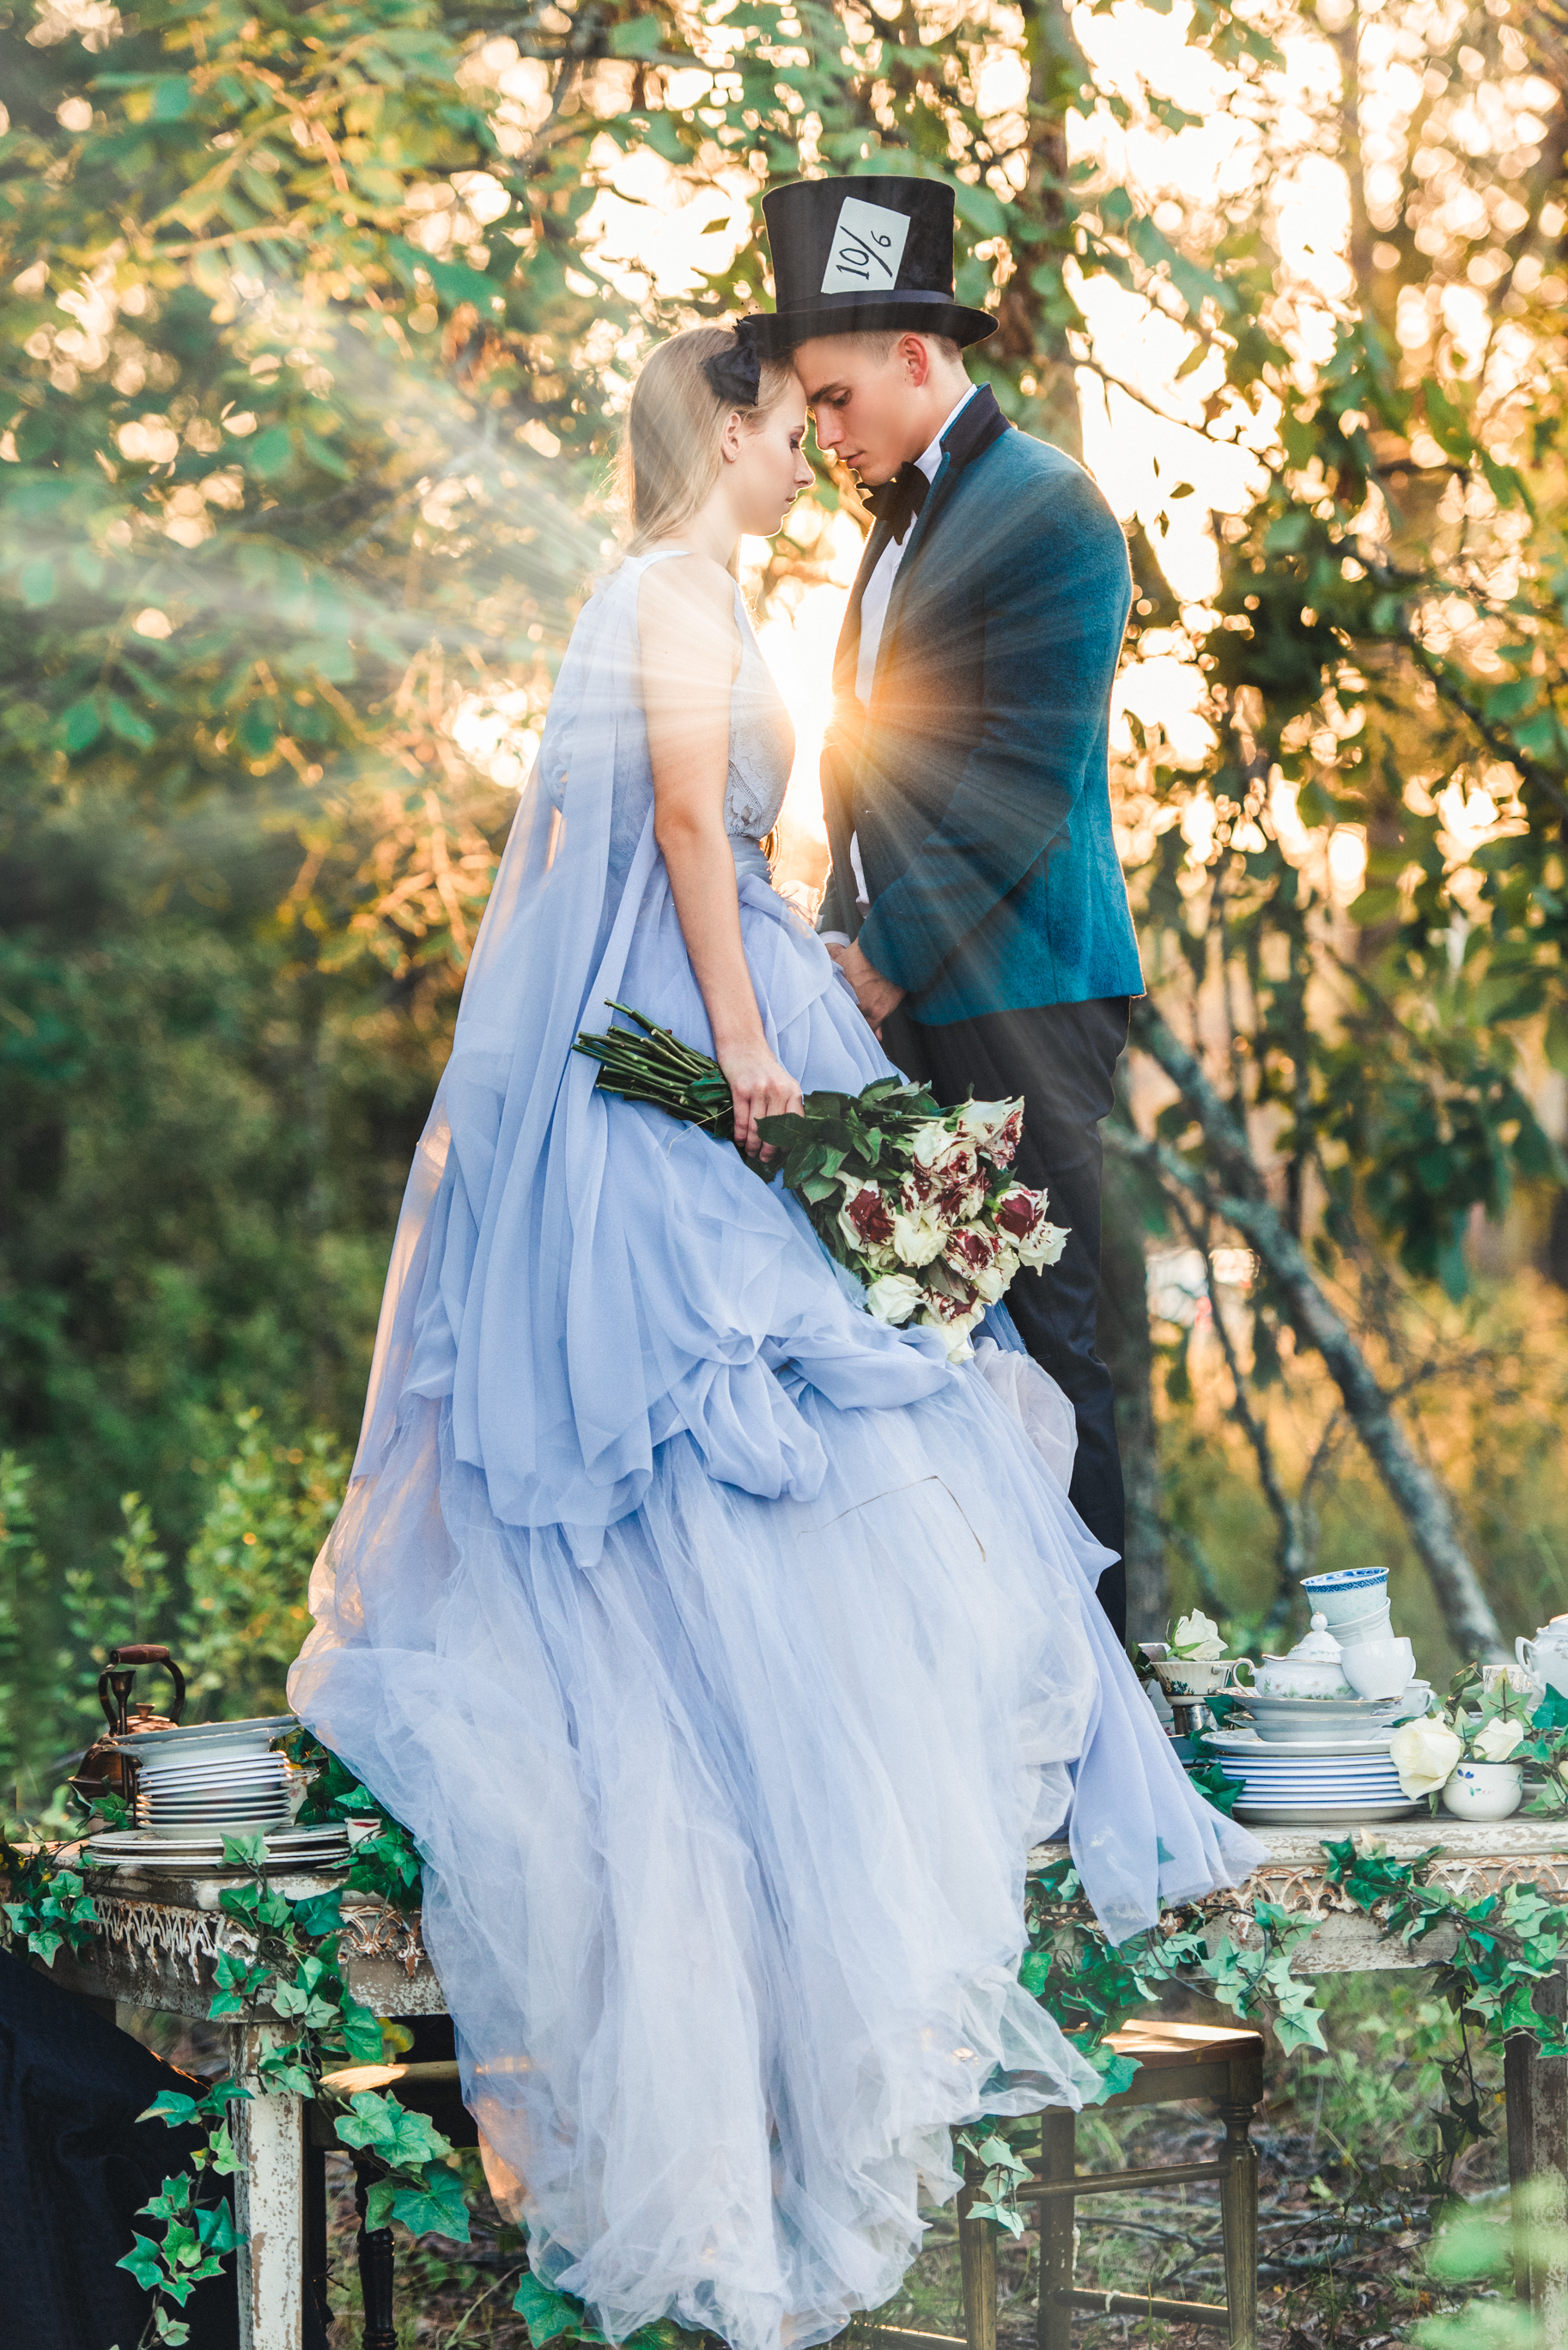 fantasy engagement photography by 1001 angles photography